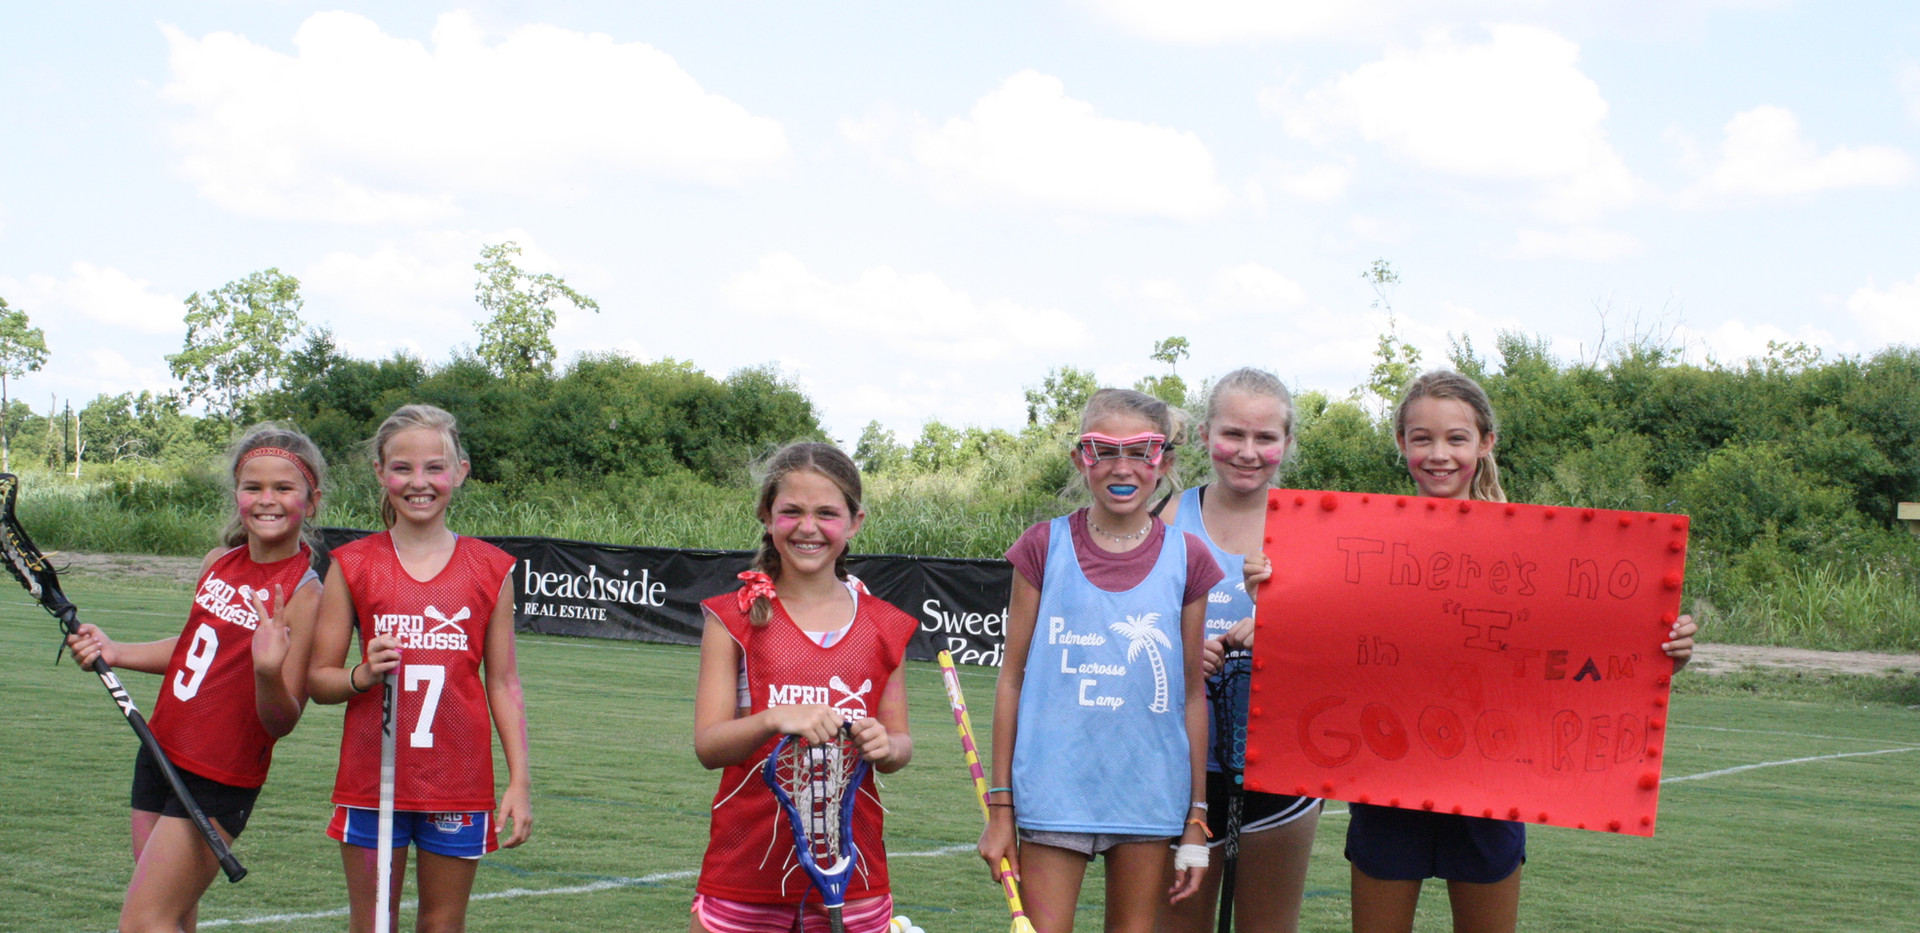 Girls-lacrosse-camp-charleston-fun